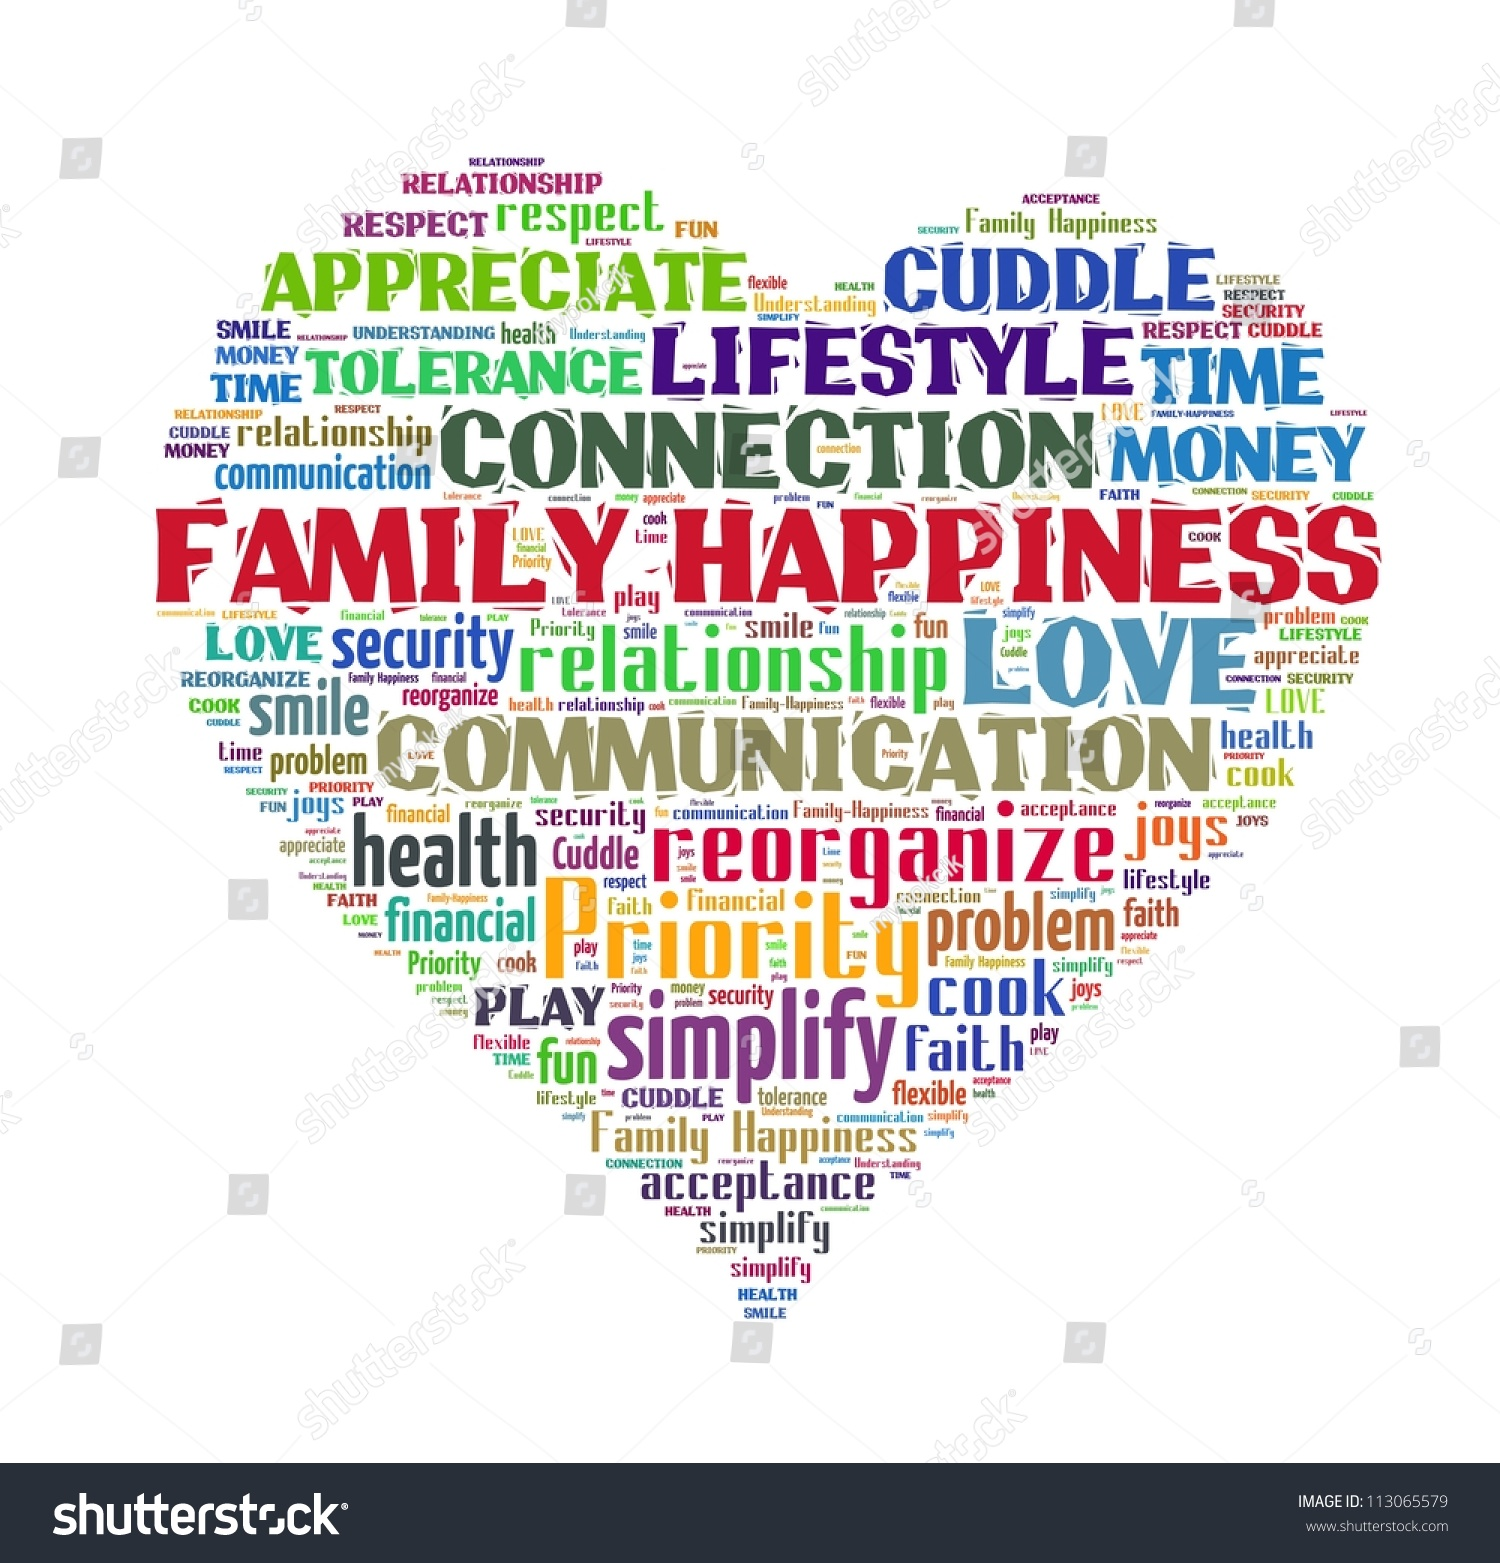 A Word Of Happiness: Family Happiness Word Collage Stock Illustration 113065579